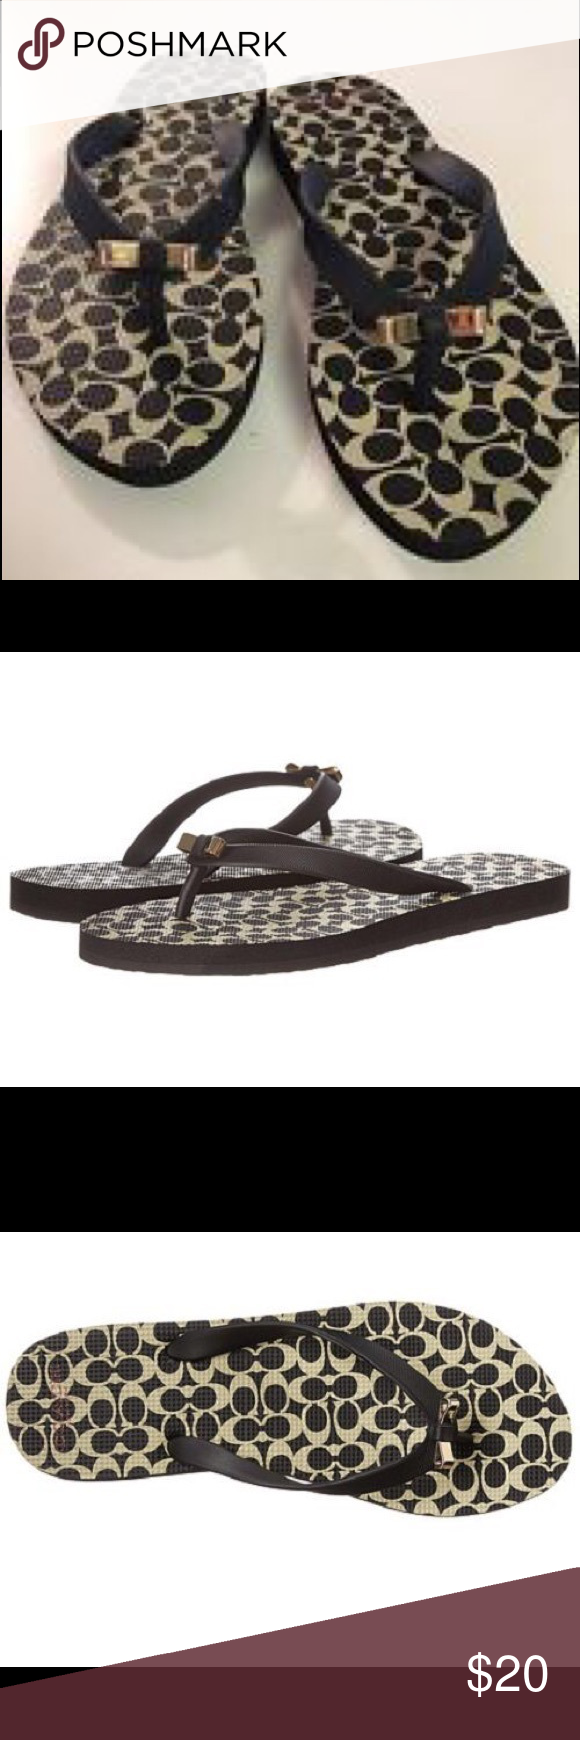 1945d9d144b3 NIB Coach AMEL Black   Milk Flip Flops with Bows New in Box. Coach AMEL  Thong Sandals. Black   Milk Signature C Logo bottom with Engraved Gold Bow  details.